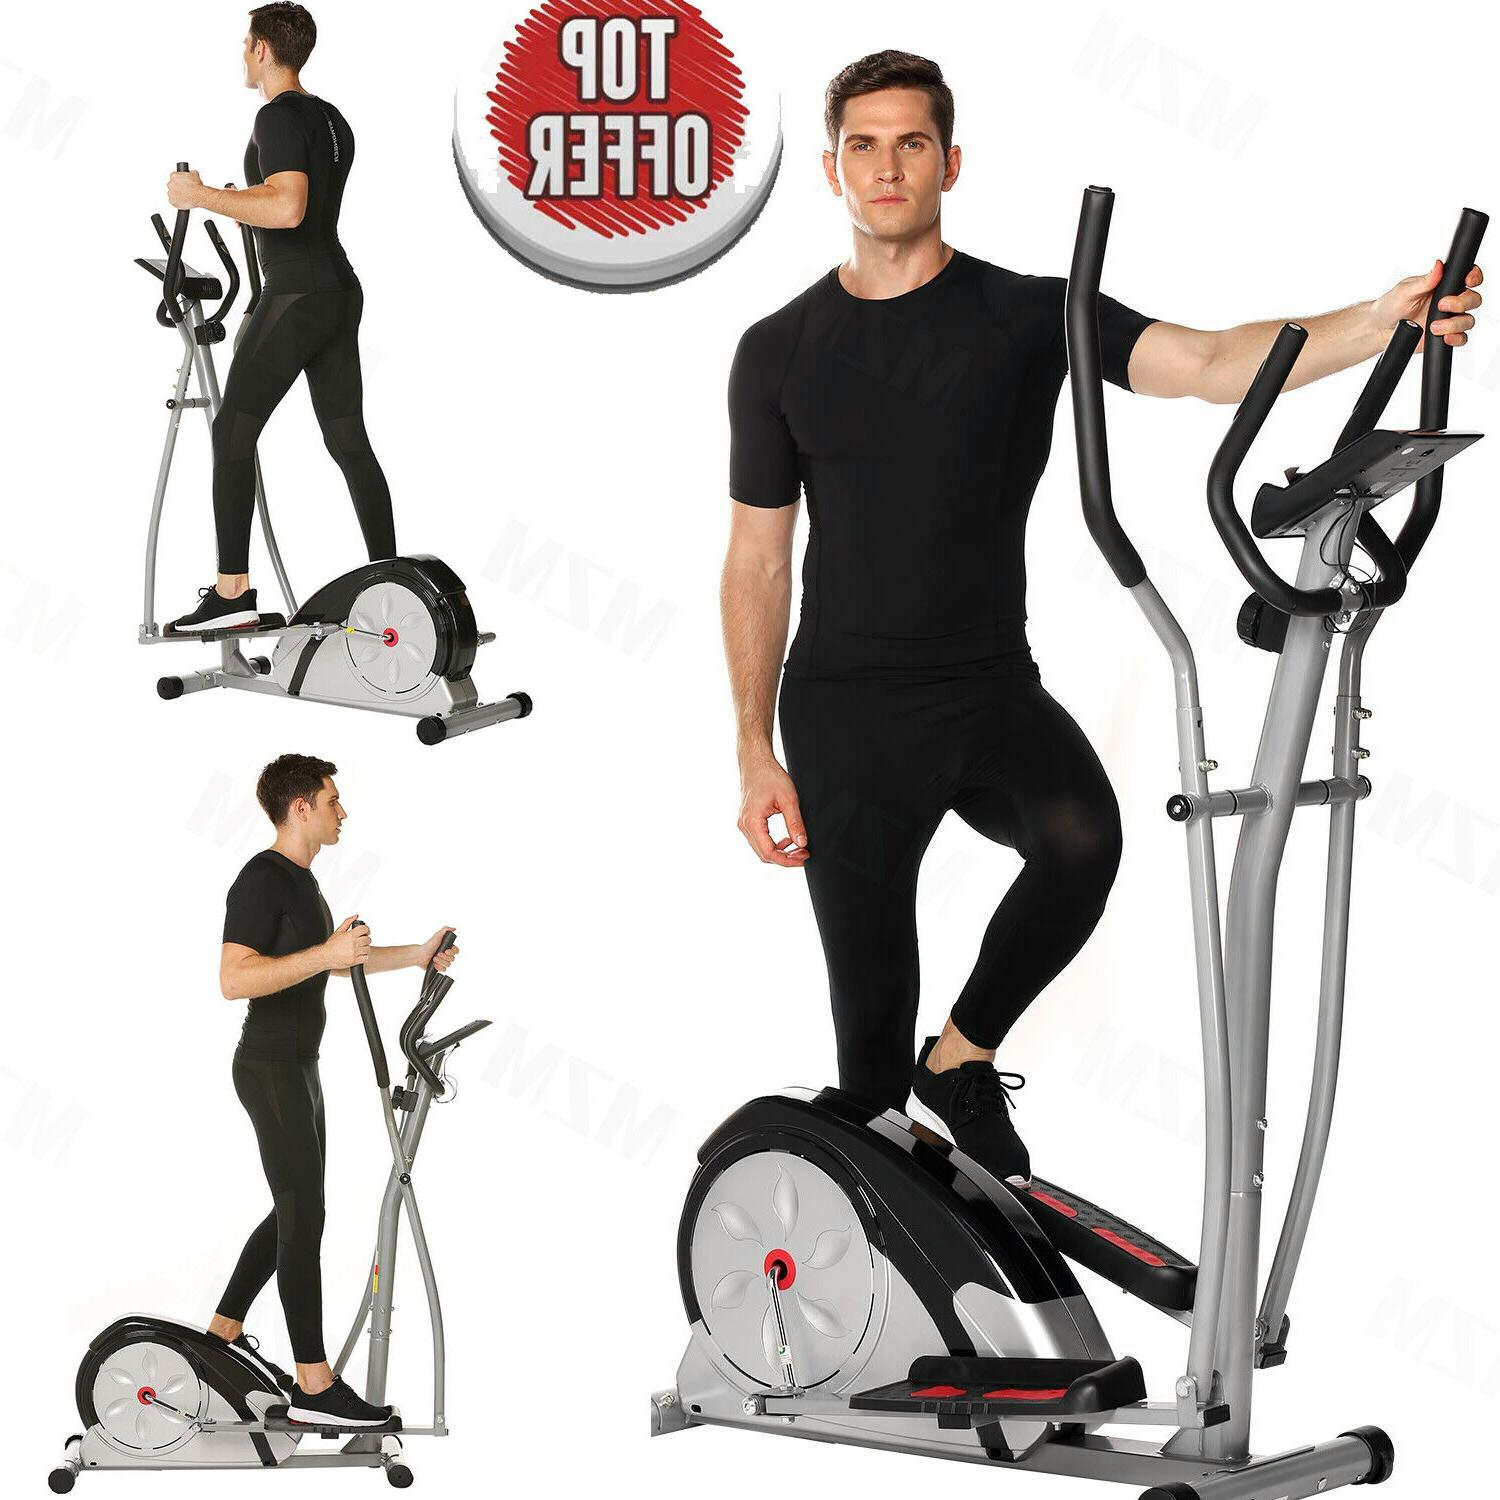 New Elliptical Machine, Resistance Workout